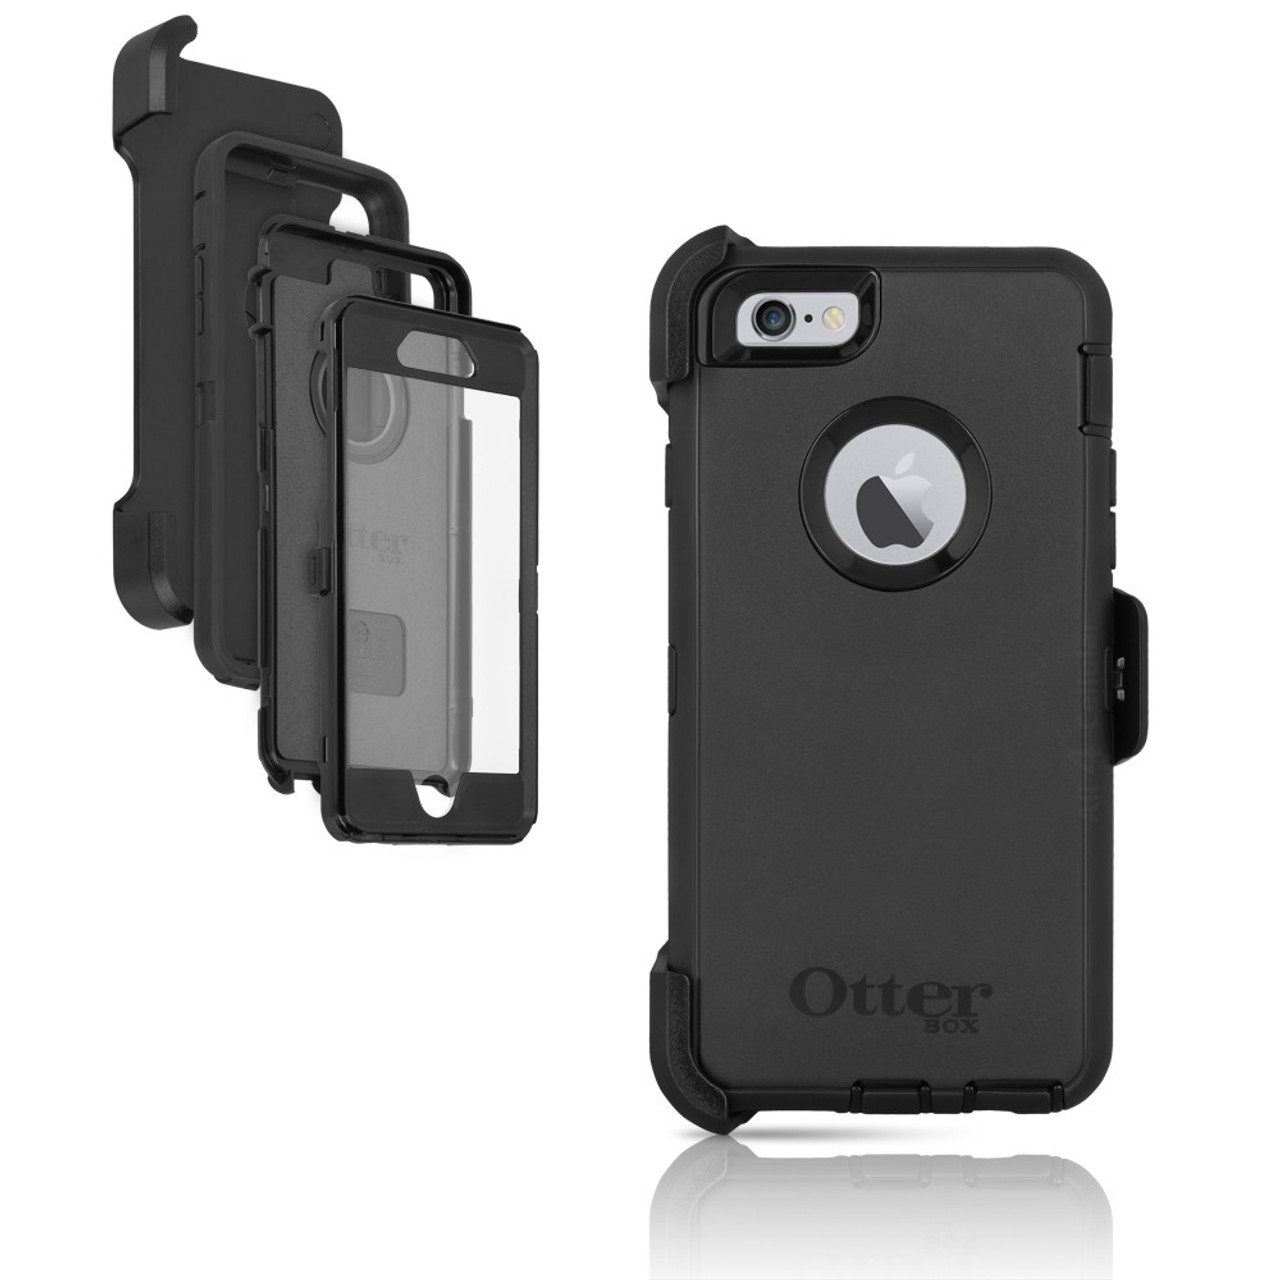 6d155518f113 OtterBox iPhone 6 6s Defender Series Case   Holster - eSureBuy.com